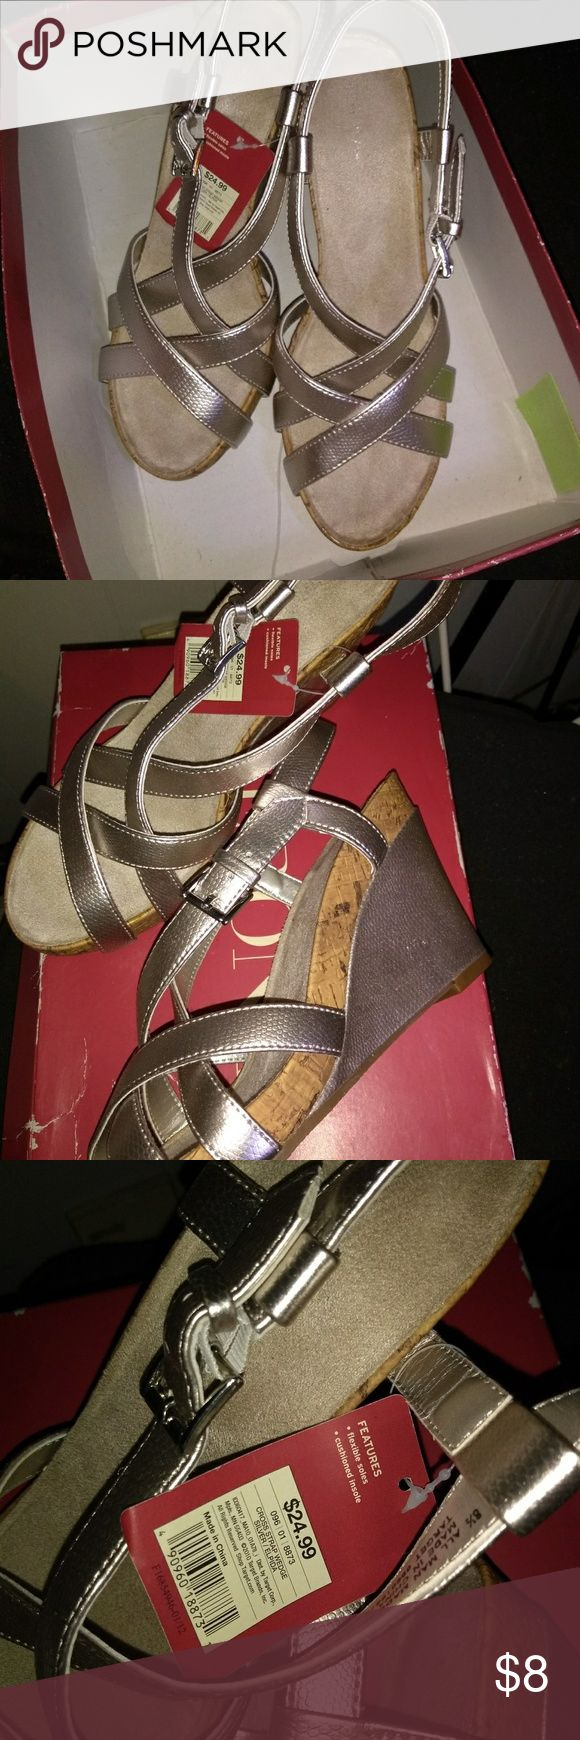 "MERONA new in box silver sandals Silver wedge sandals  Soft cushion insole  3"" heels   Size 8.5 Merona Shoes Wedges"